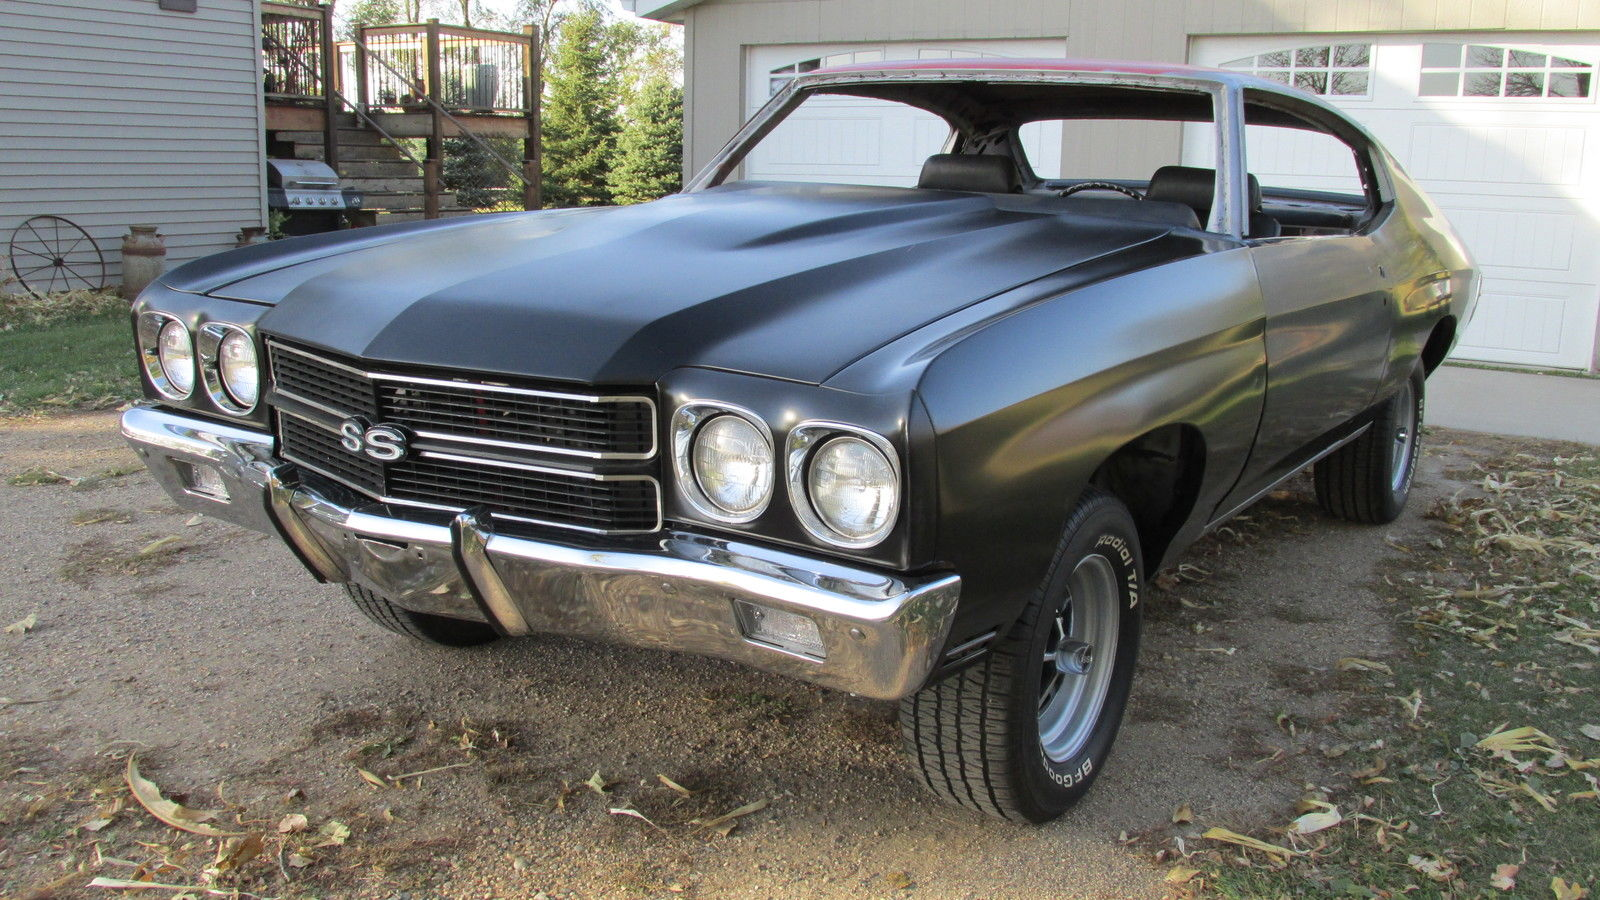 Project chevelles for sale | Essay Service - hjassignmentqqxz ...